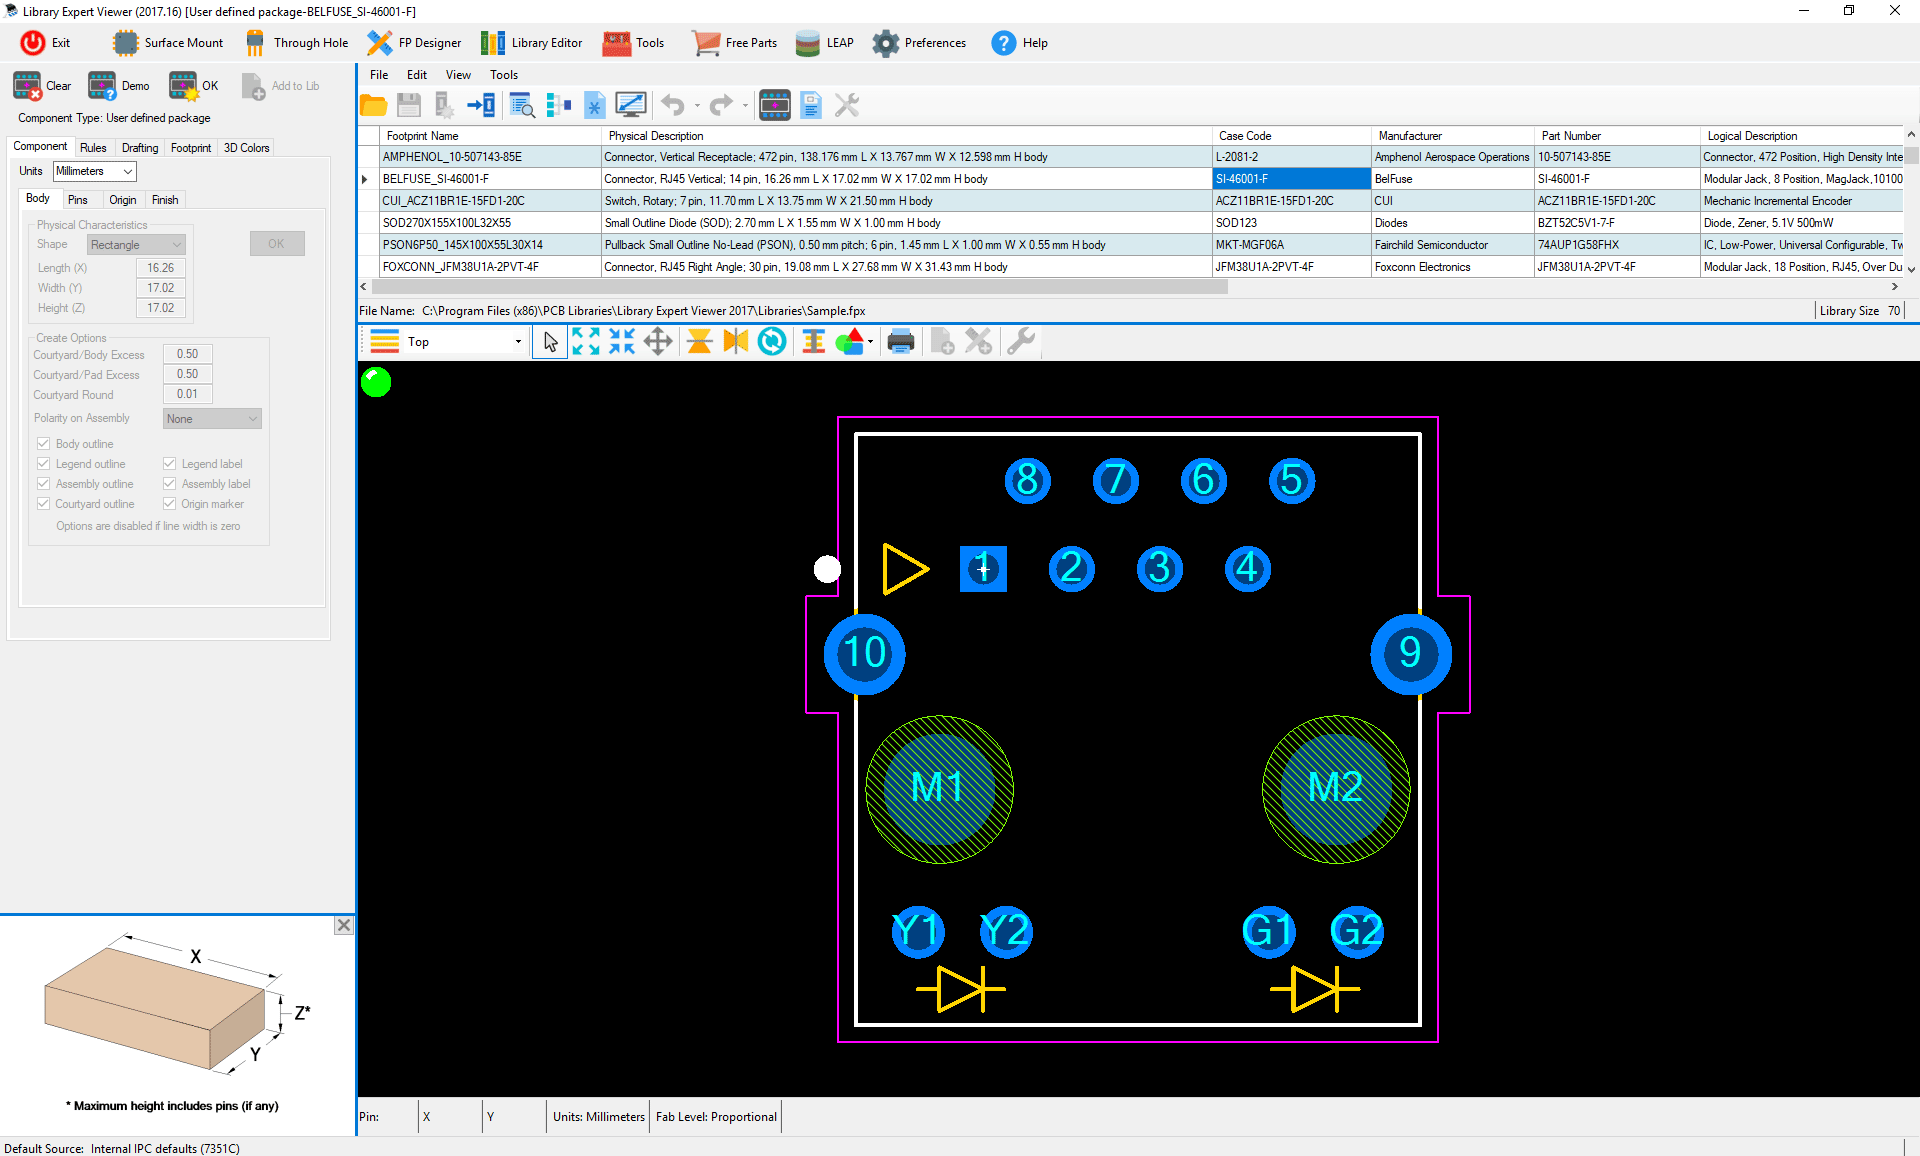 ipc  standard  pcb  library  expert  Viewer  Case  Code  3